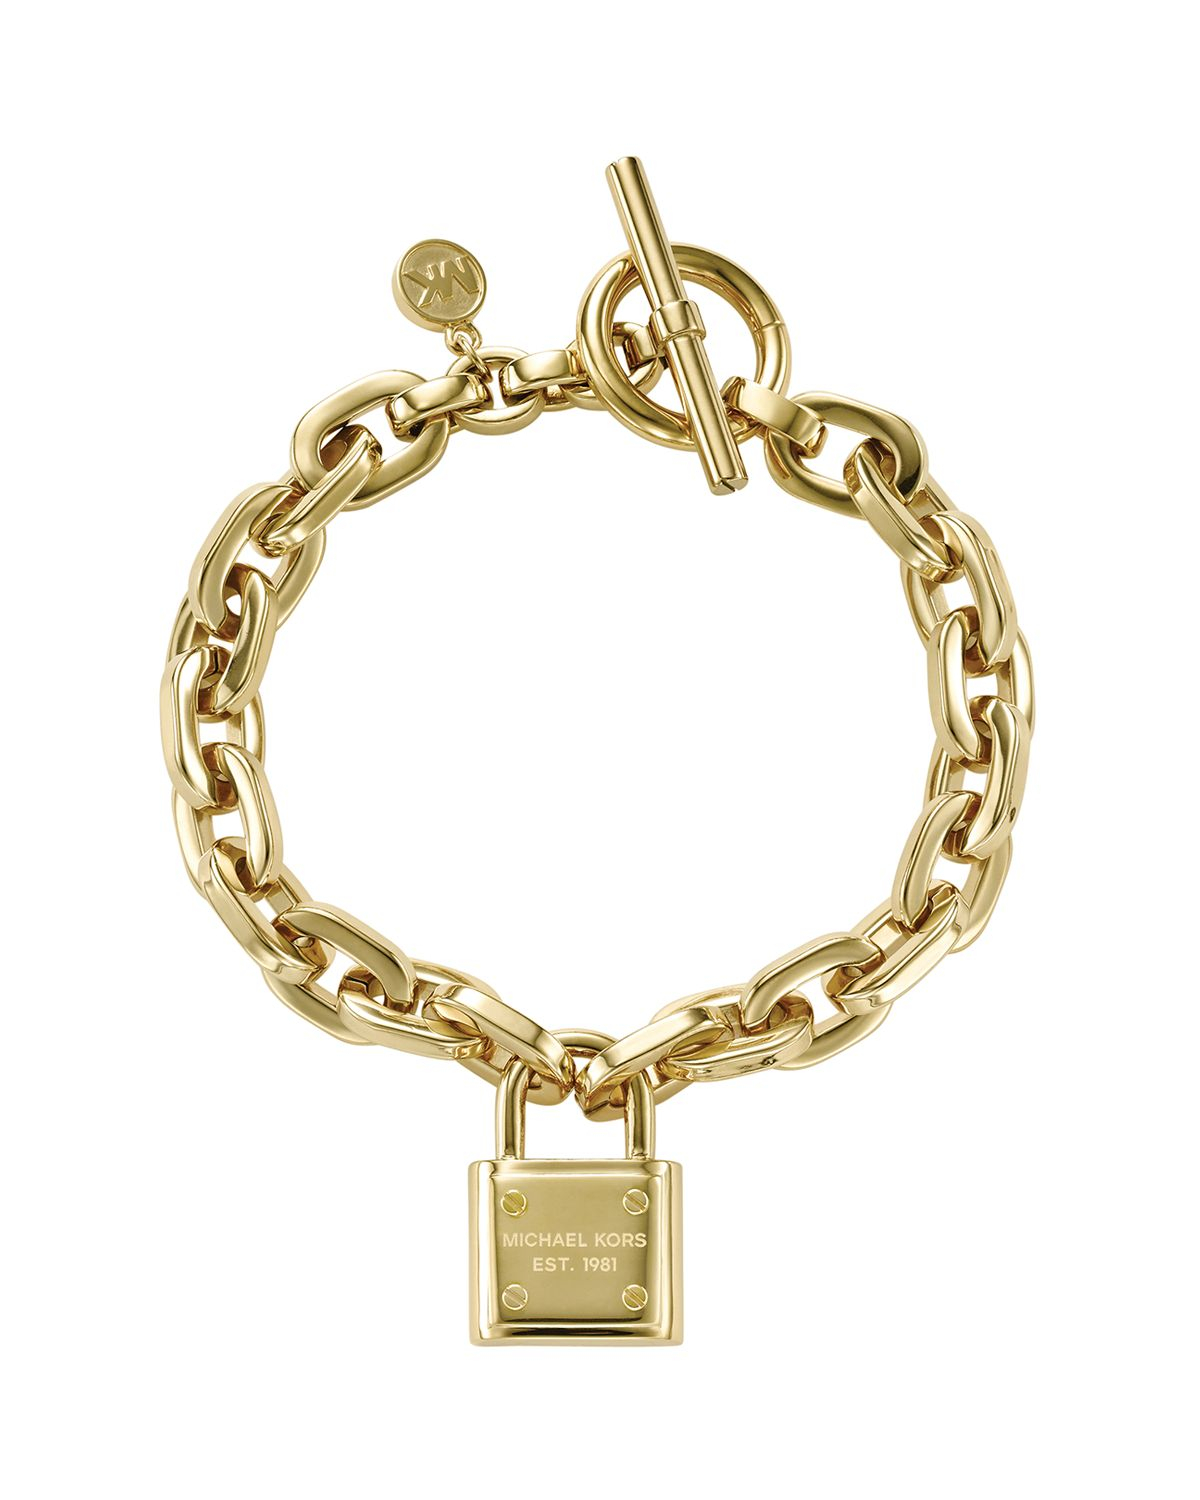 michael kors chain link padlock toggle bracelet in gold lyst. Black Bedroom Furniture Sets. Home Design Ideas